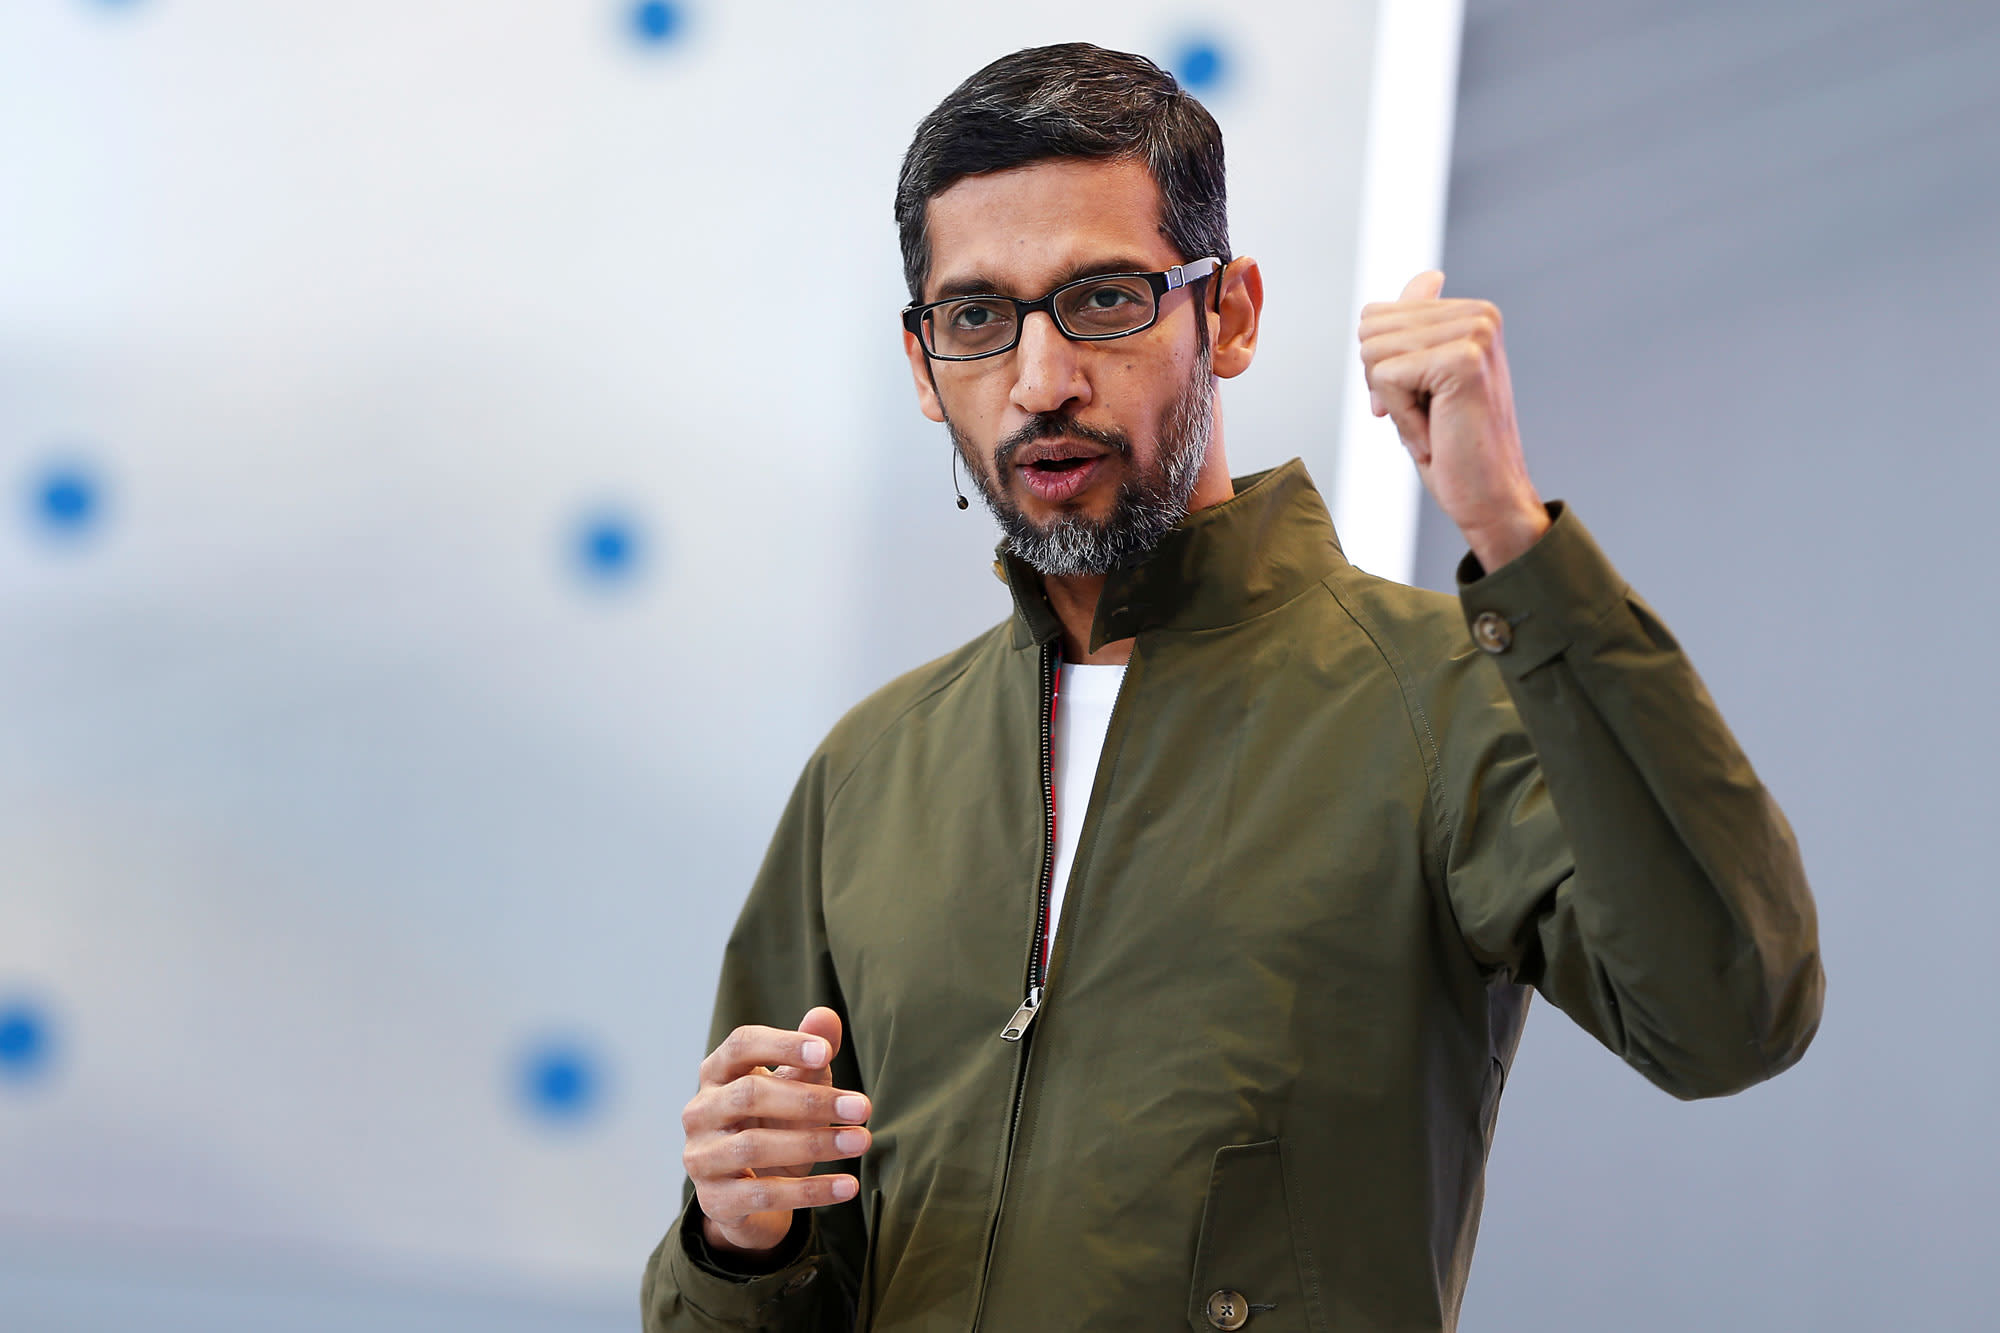 Google to acquire Fitbit, valuing the smartwatch maker at about $2.1 billion